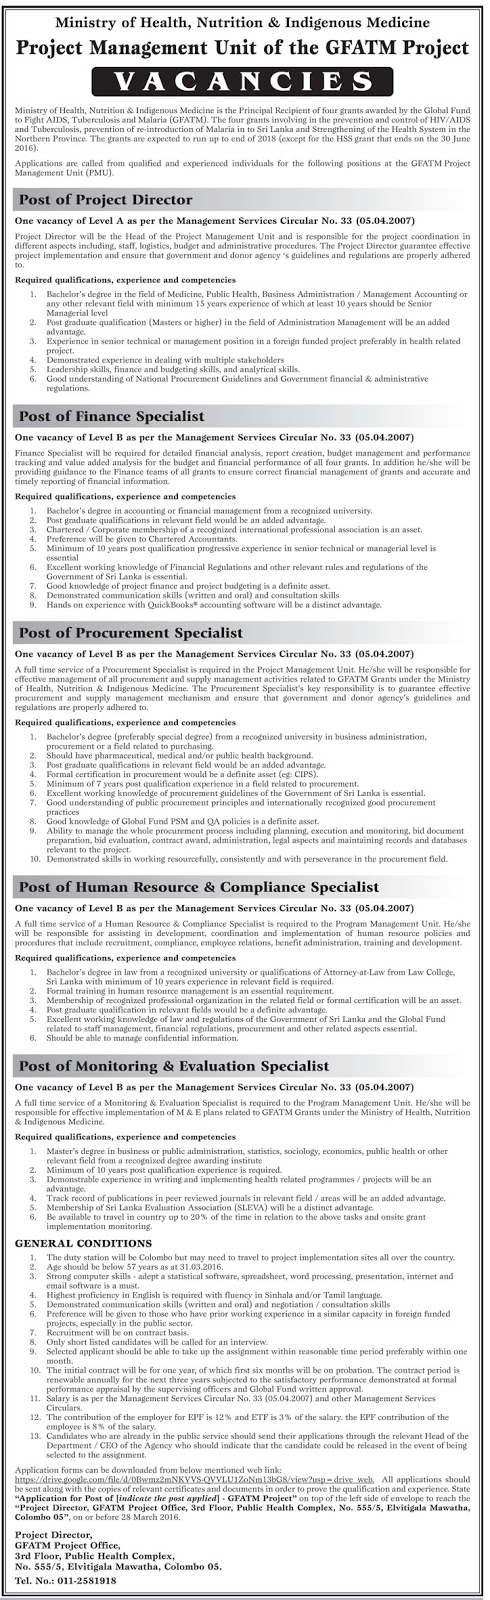 Vacancies – Project Director - Finance Specialist - Procurement Specialist - Human Resource And Compliance Specialist -Monitoring And Evaluation Specialist - Project Management Unit Of The GFATM Project - Ministry Of Health Nutrition And Indigenous Medicine